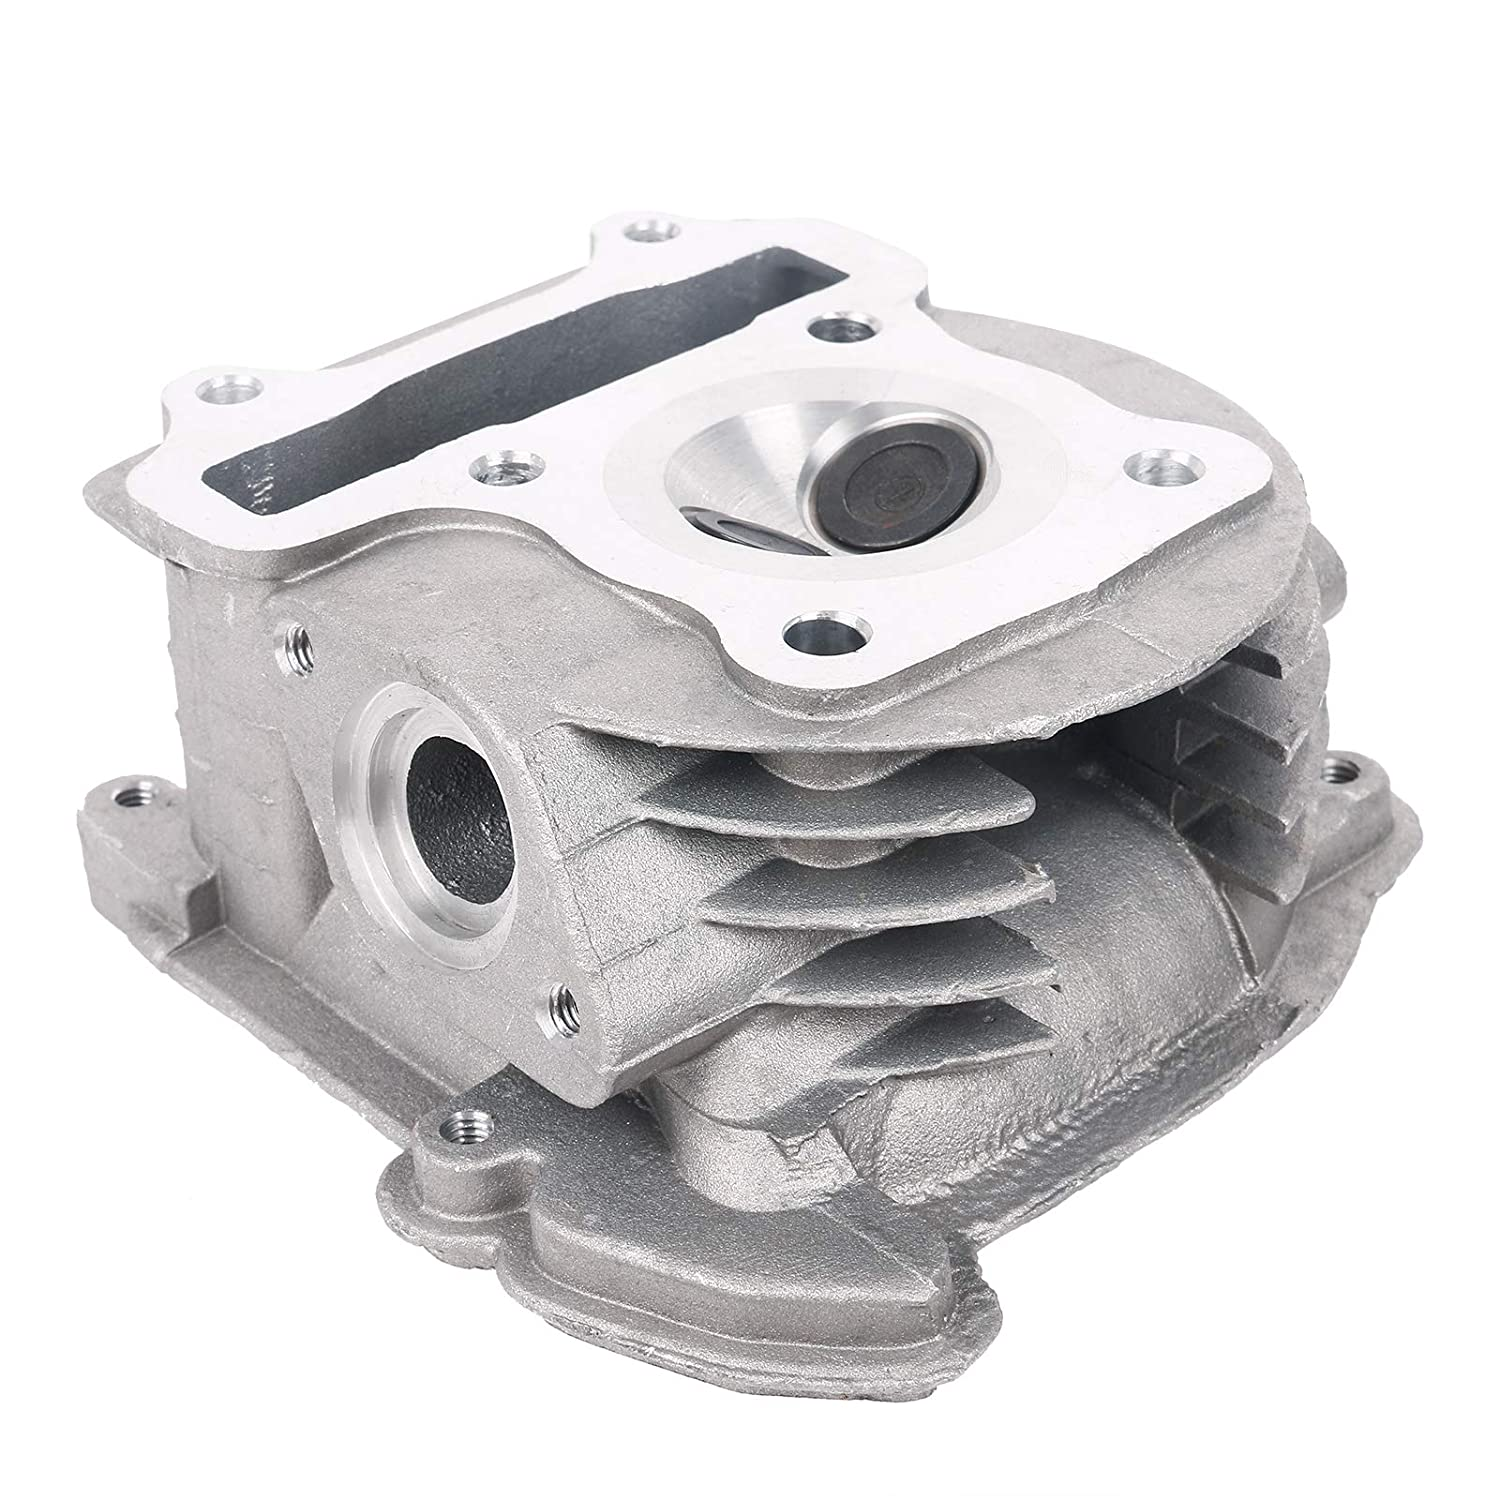 69mm Valves, Non EGR Type Glixal GY6 49cc 50cc to 100cc Chinese Scooter Engine 50mm Cylinder Head Assy for 139QMB 139QMA Moped ATV Quad Go Kart